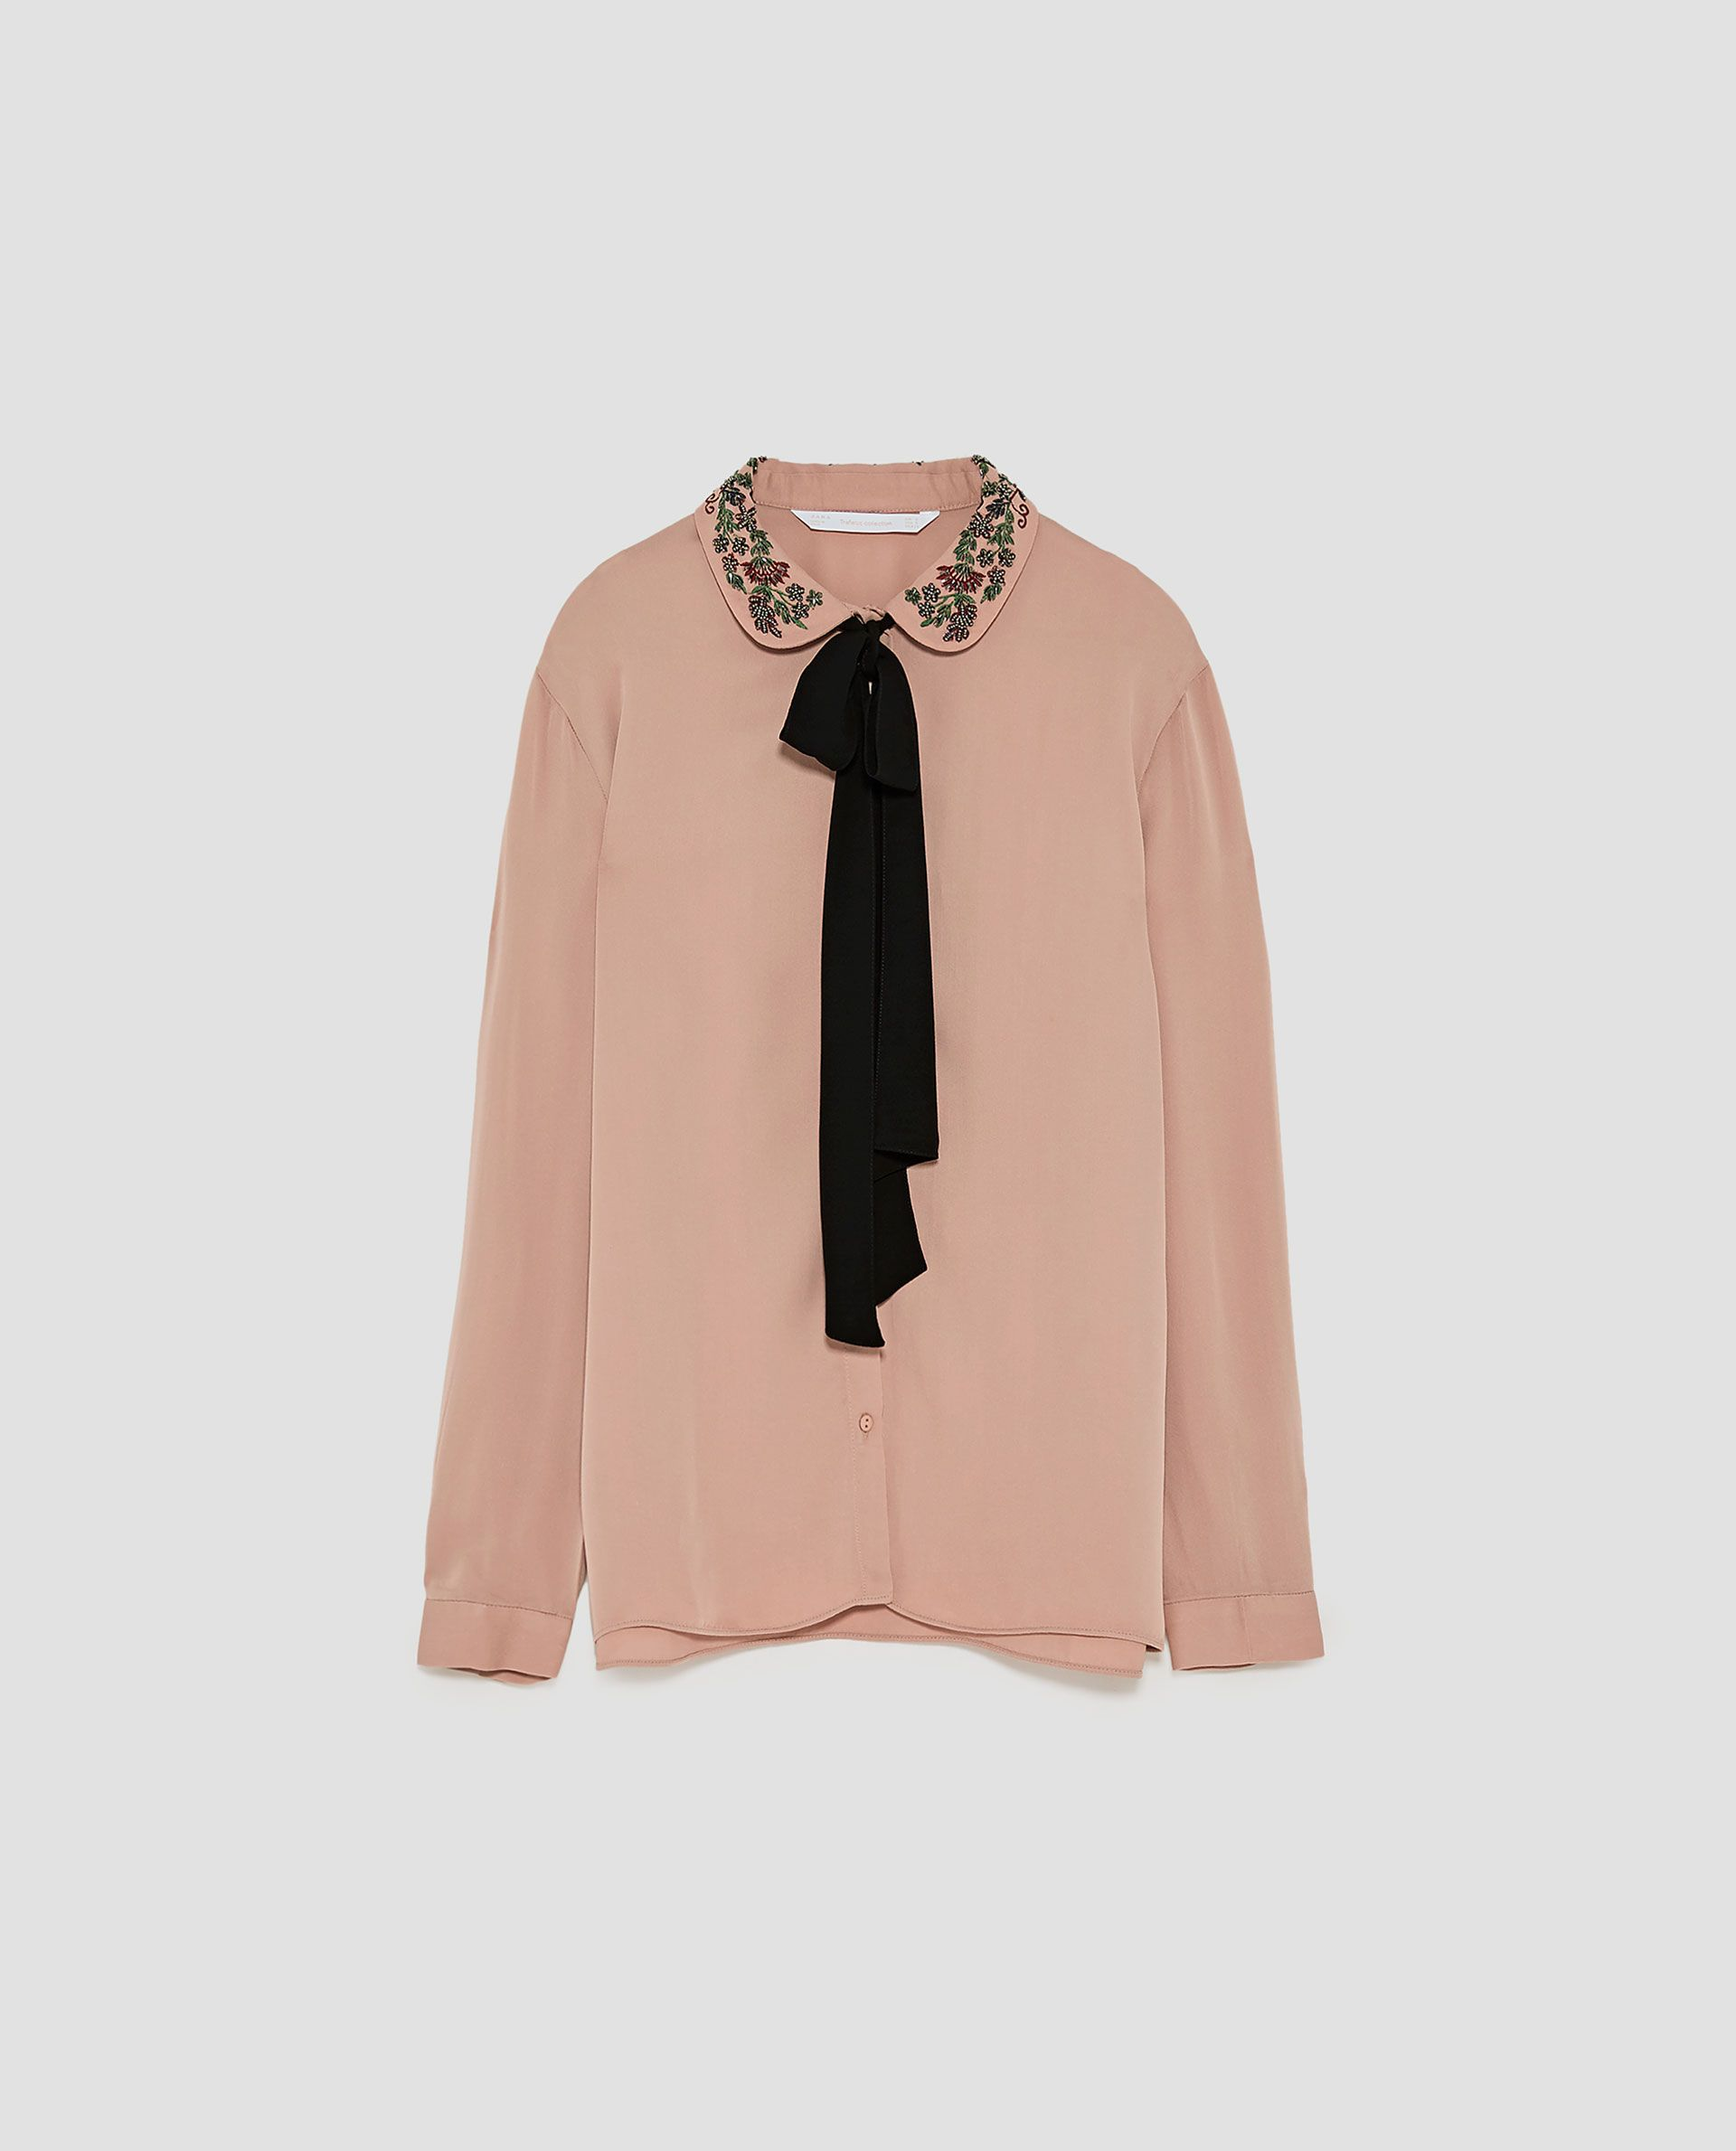 Image 8 Of Shirt With Embroidered Collar And Bow From Zara My